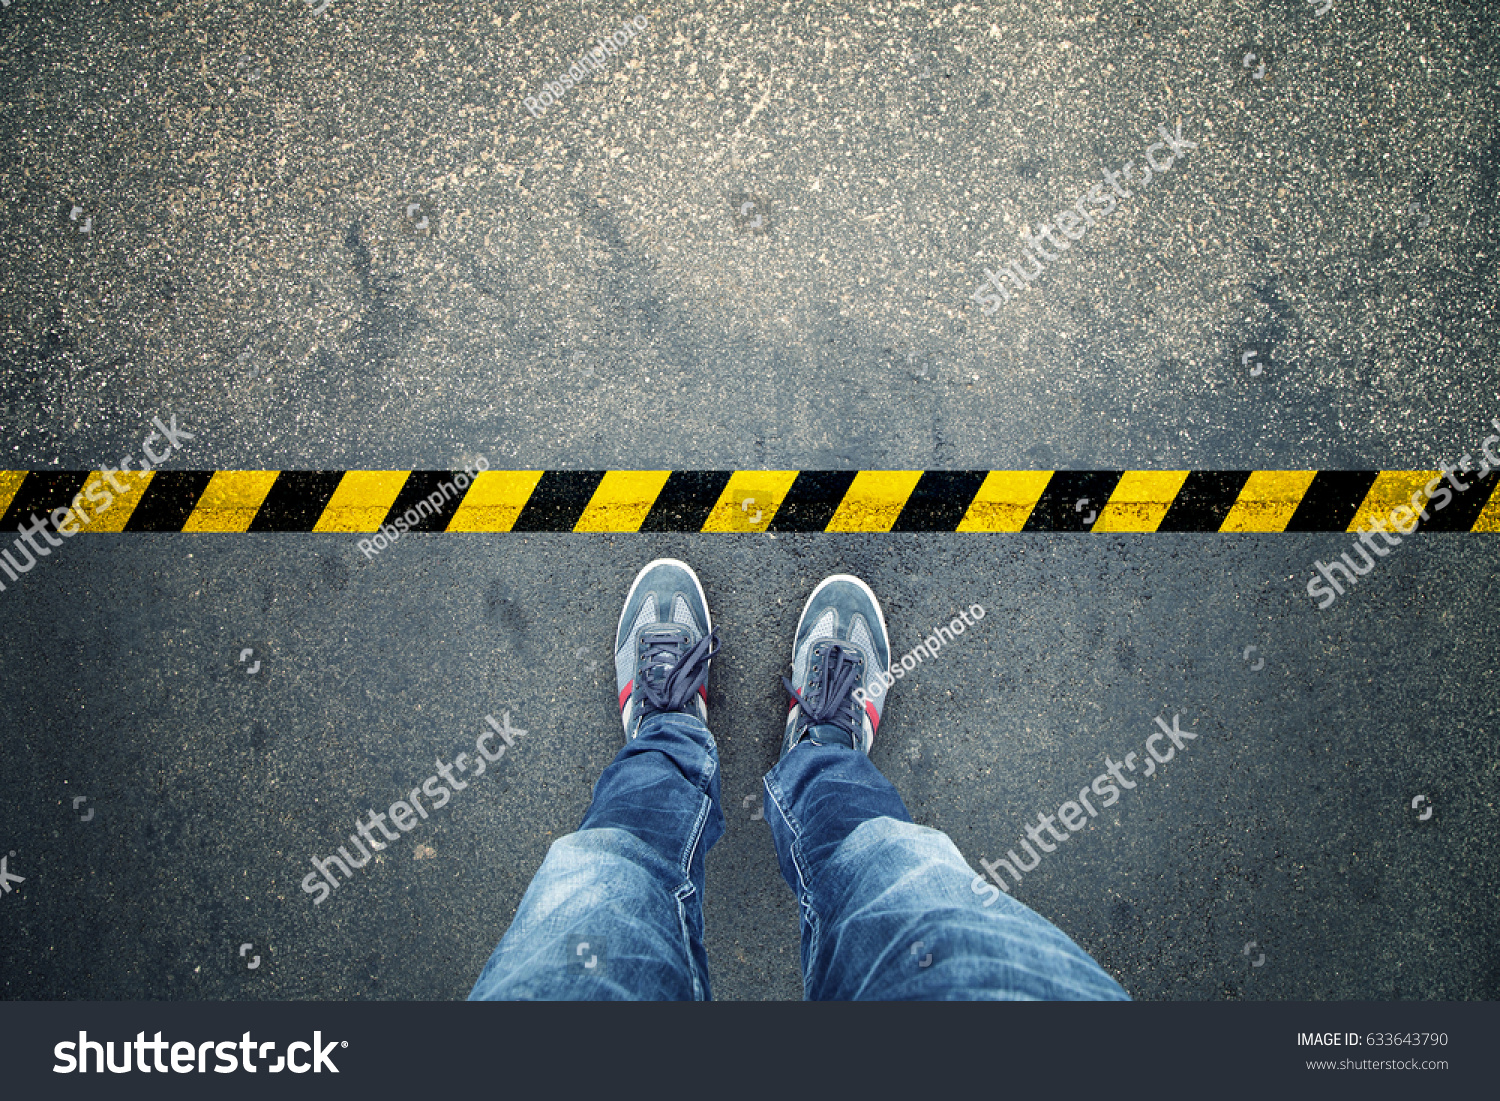 Top view of a man stands on industrial striped asphalt floor with warning yellow black pattern. #633643790